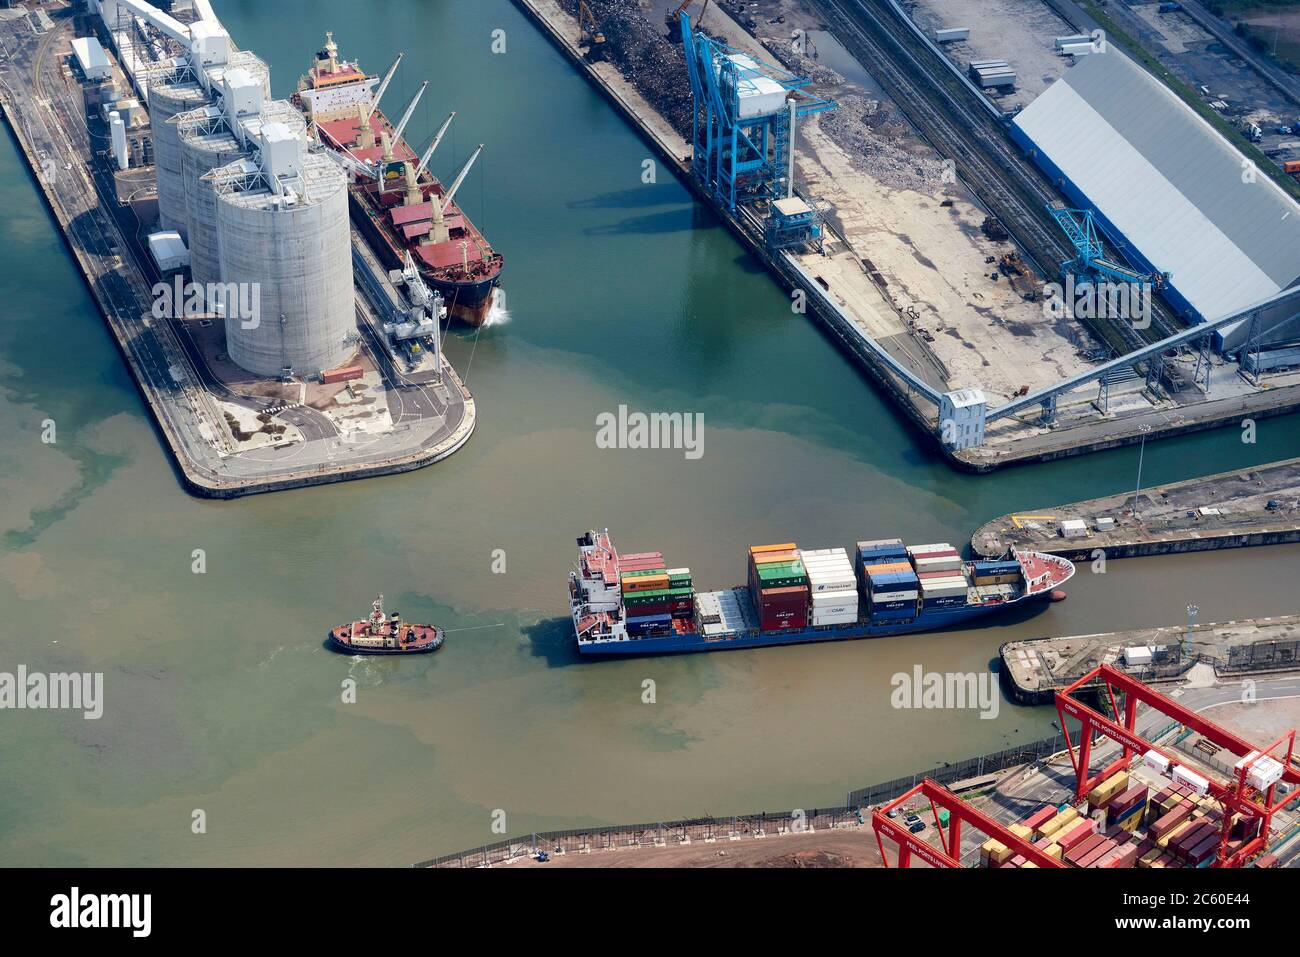 An aerial view of a container ship leaving Seaforth Docks, Liverpool, Merseyside, North West England, UK Stock Photo